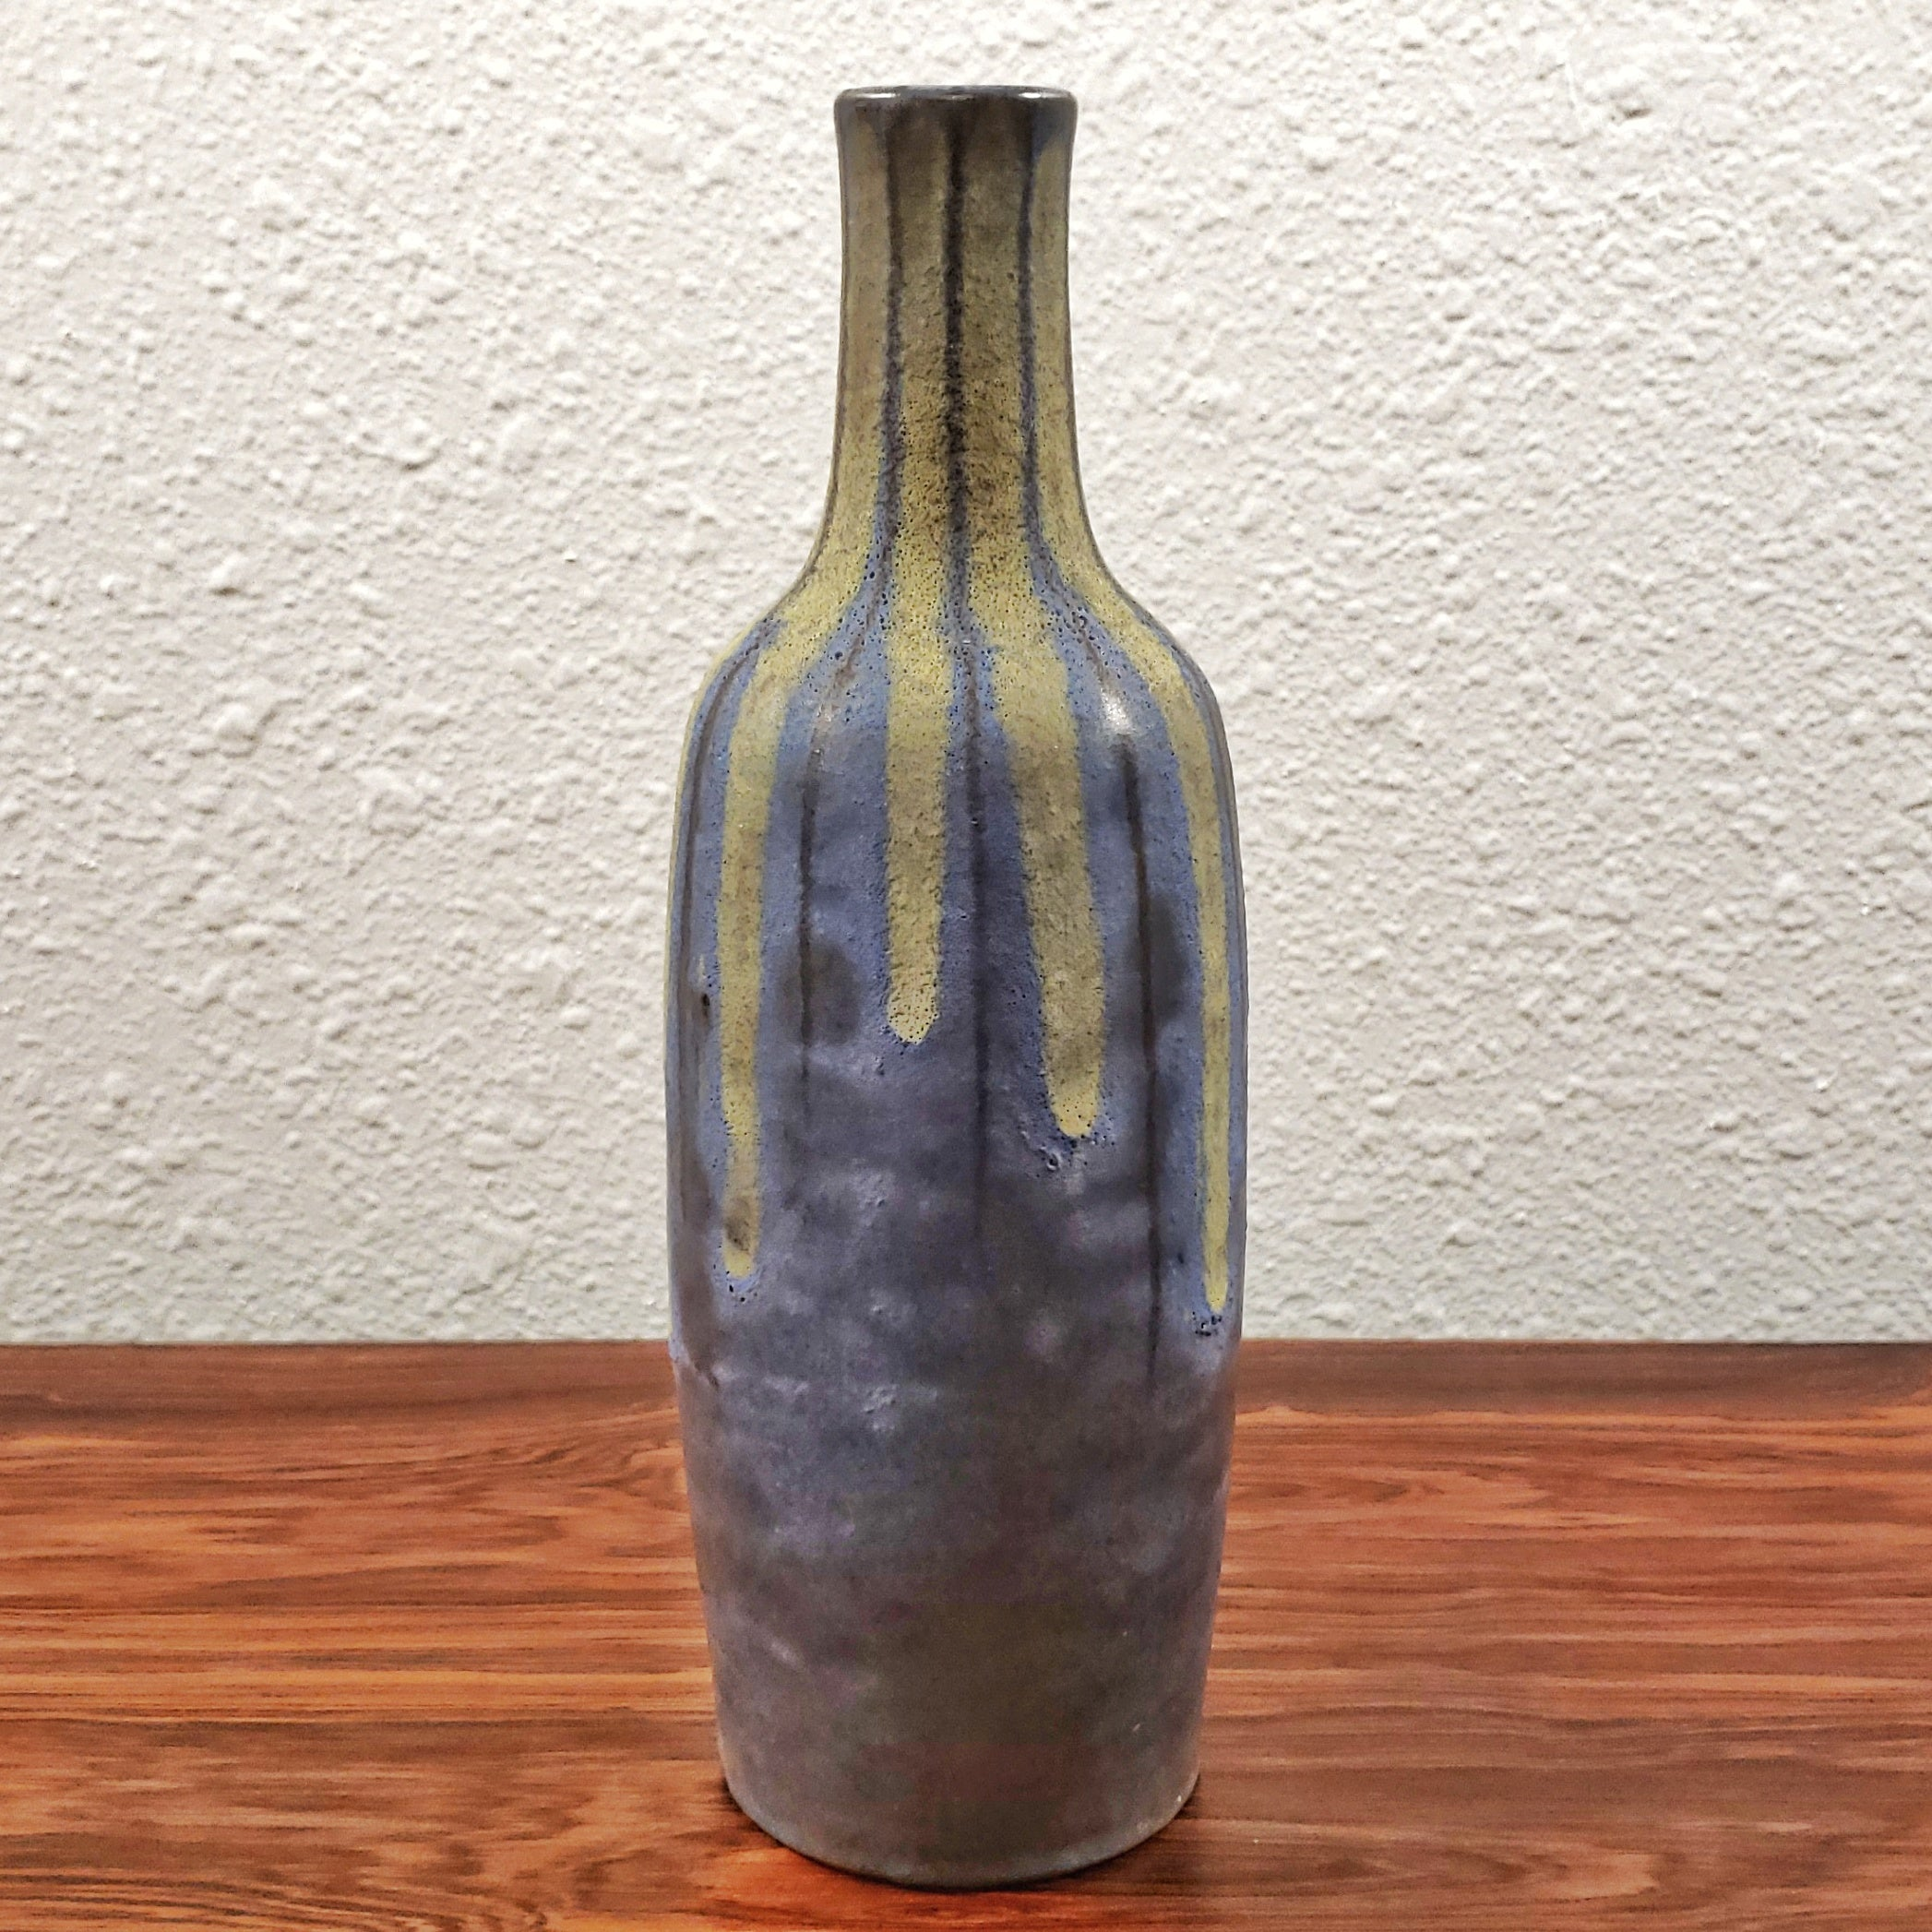 HANNS WELLING 'TUNDRA' VASE FOR CERAMANO